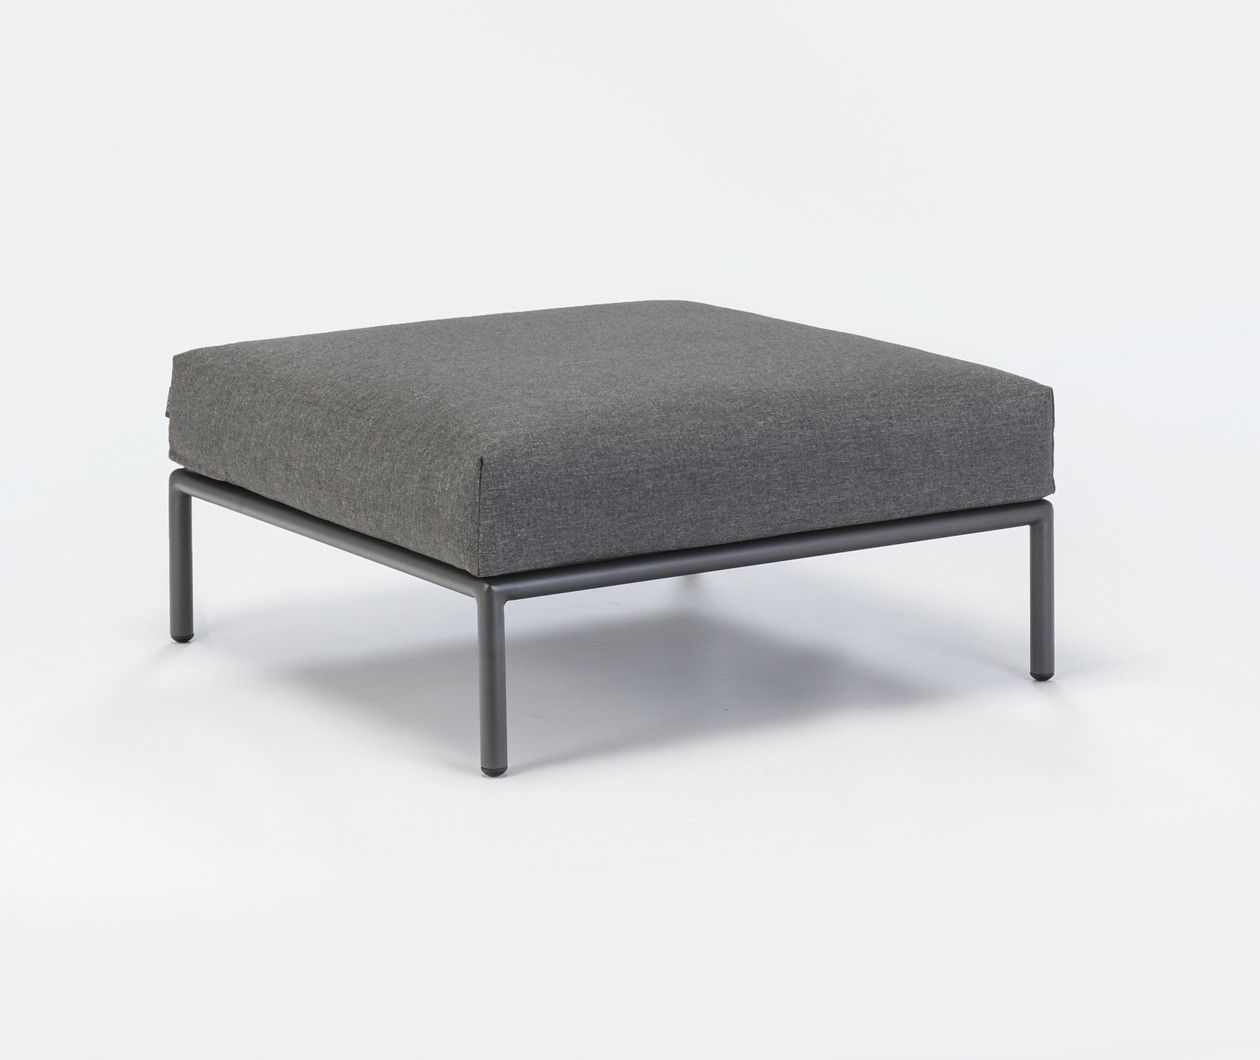 Sehr Gut Hocker Gartenstühle: Maya outdoor ottoman neiman marcus *furniture  NY82